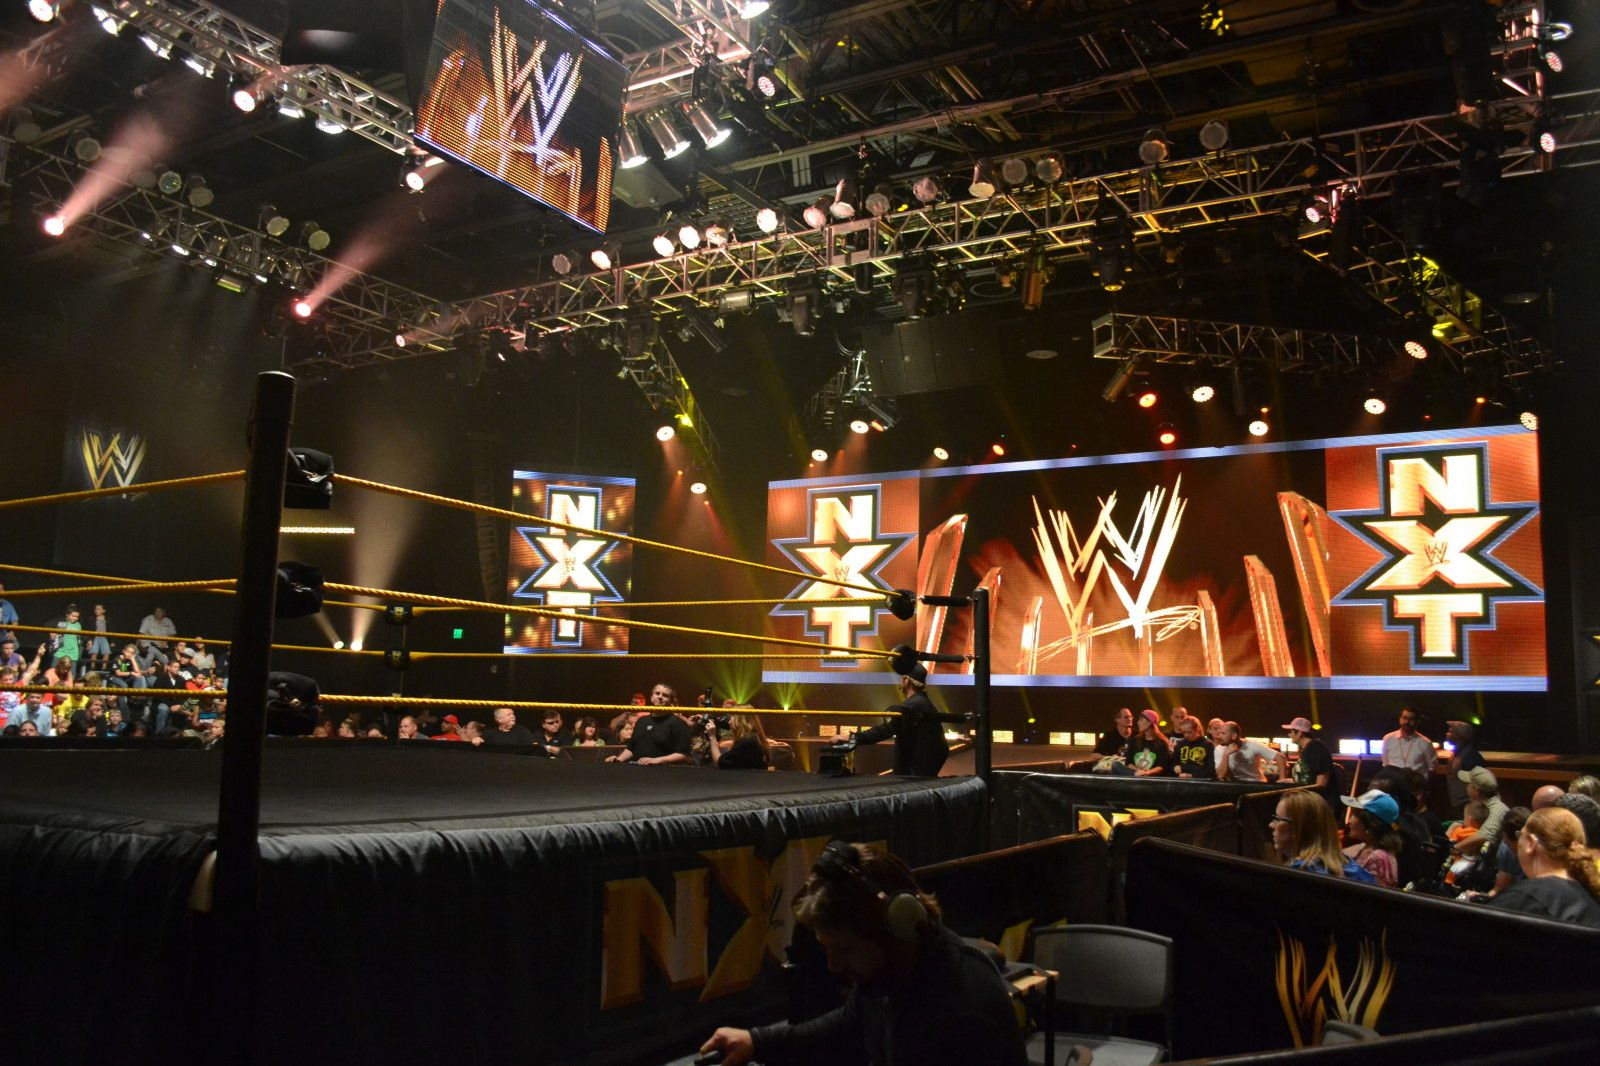 Wwe Nxt Seating Options At Full Sail On The Go In Mco Full Sail Wwe Full Sail University